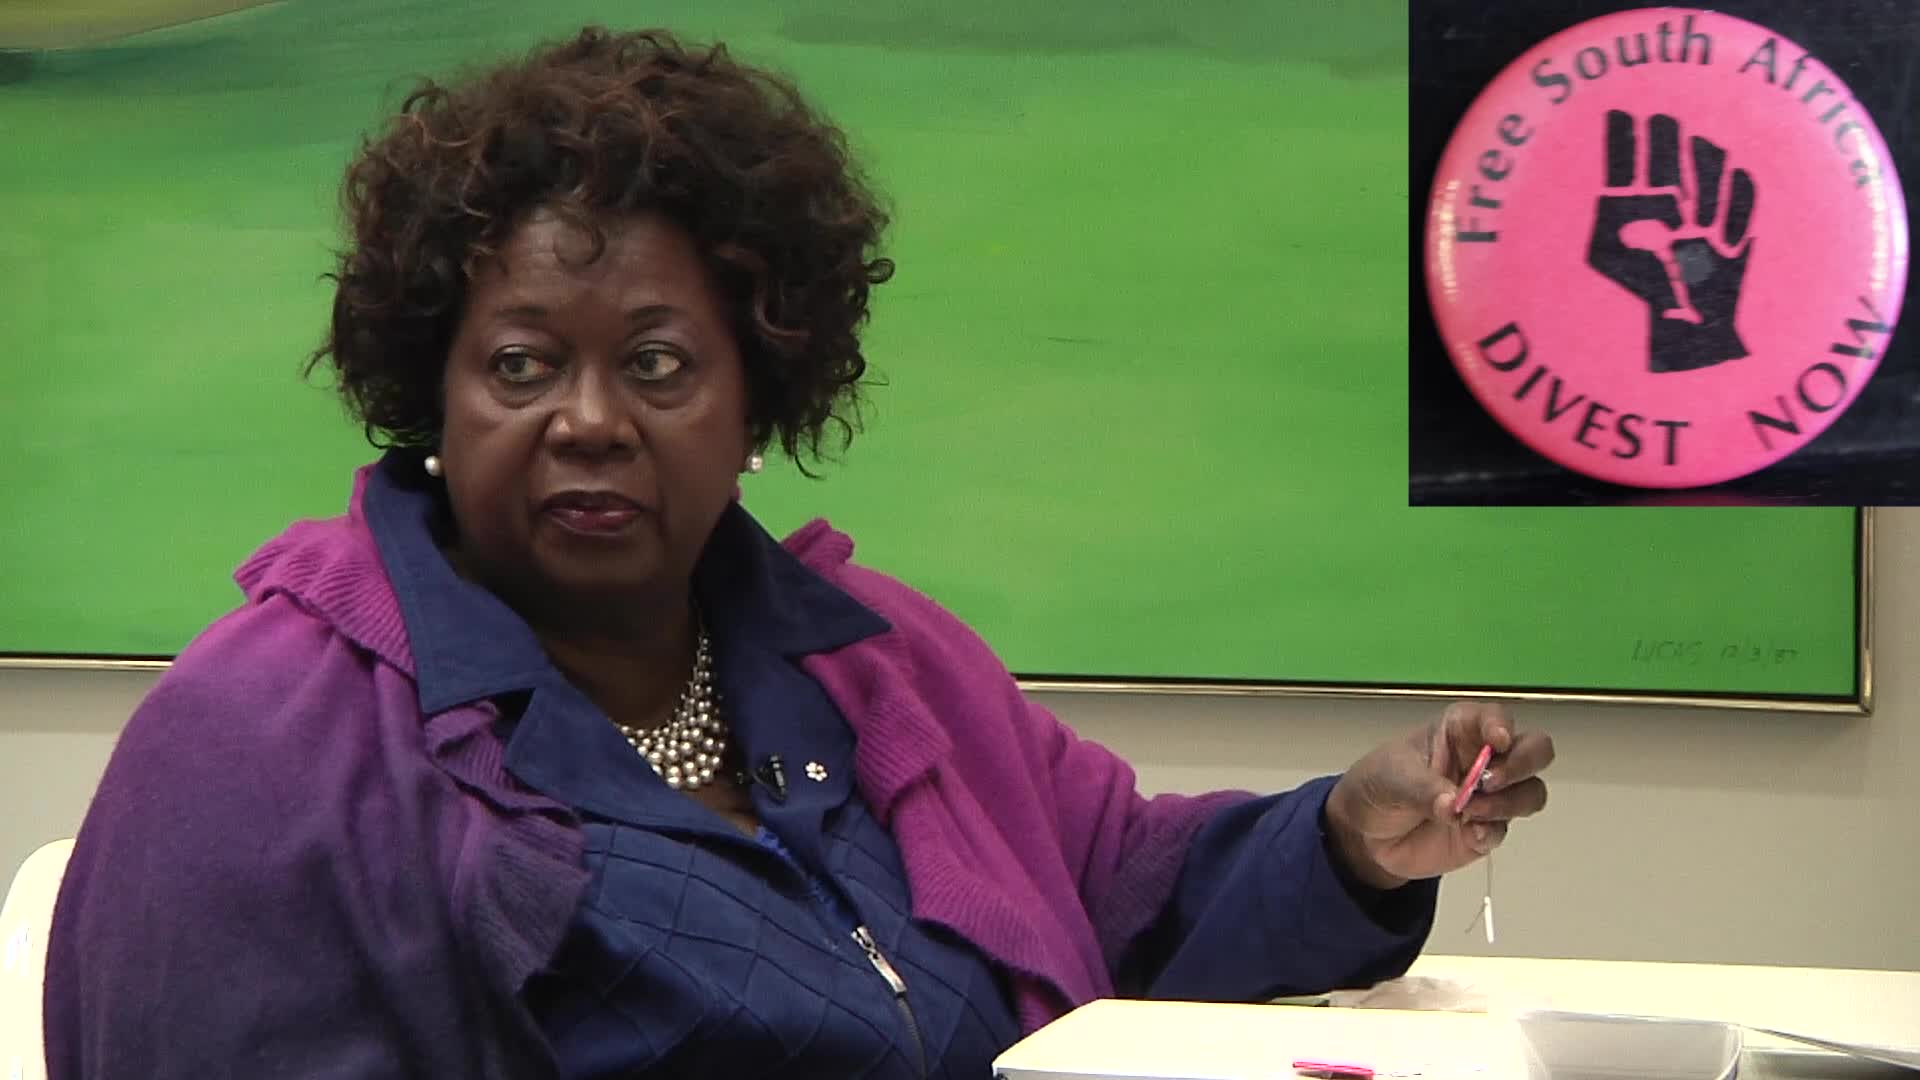 Jean Augustine interview: Free South Africa button